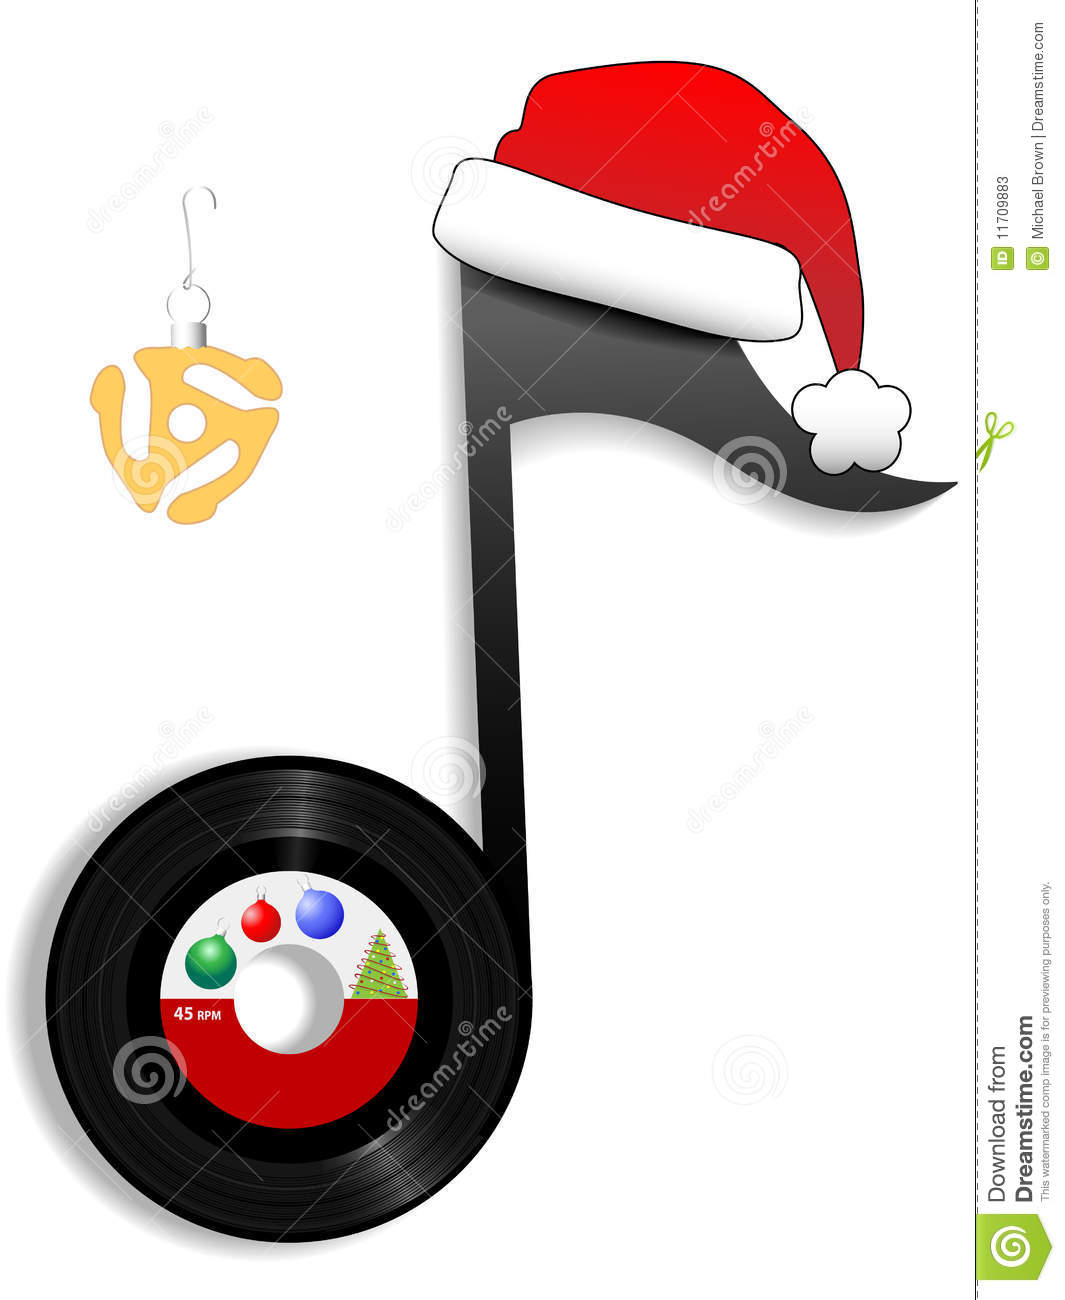 Oldies note for holiday christmas music 1 stock vector for Christmas house music